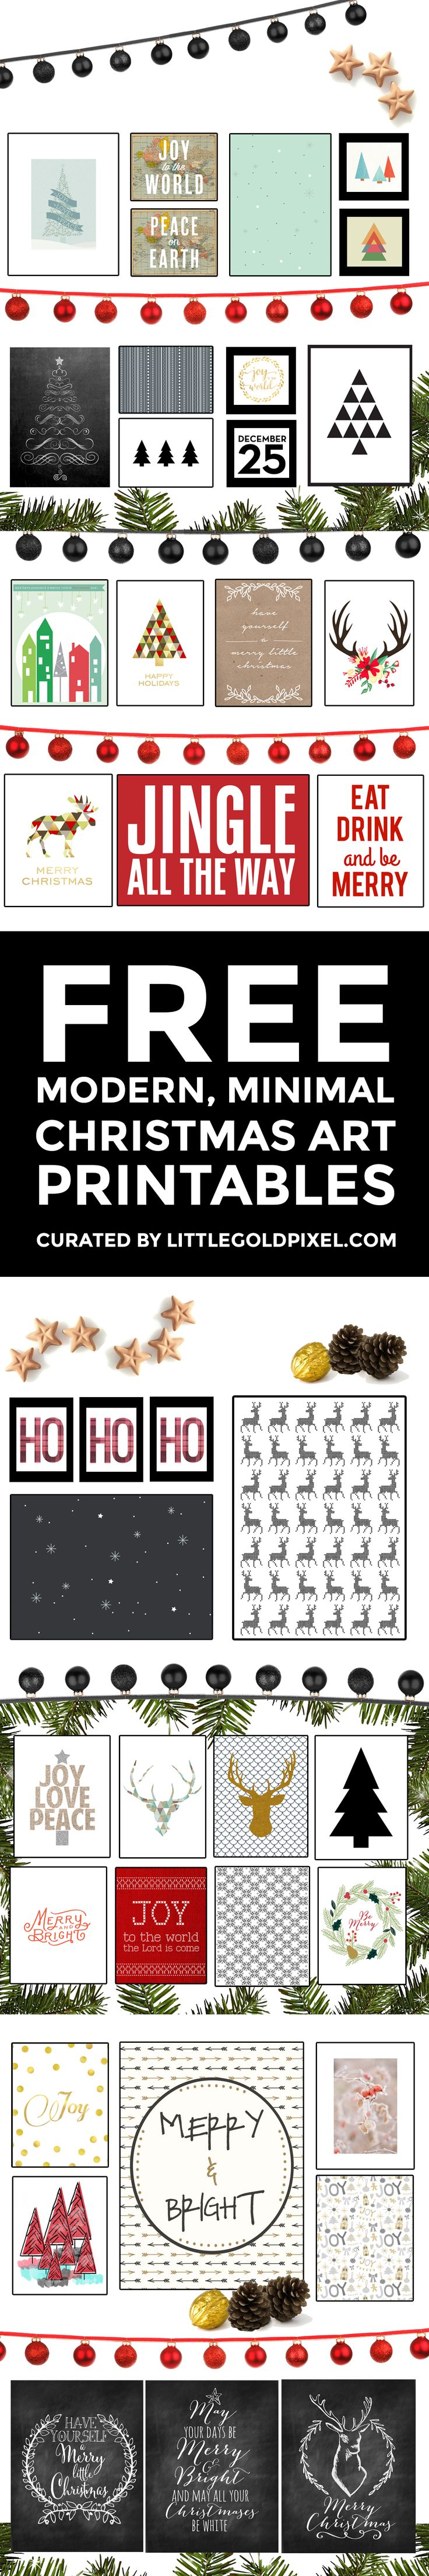 In which I round up 35+ stylish, modern and fun free Christmas printables to frame, an easy way to spiffy up your holiday decor.